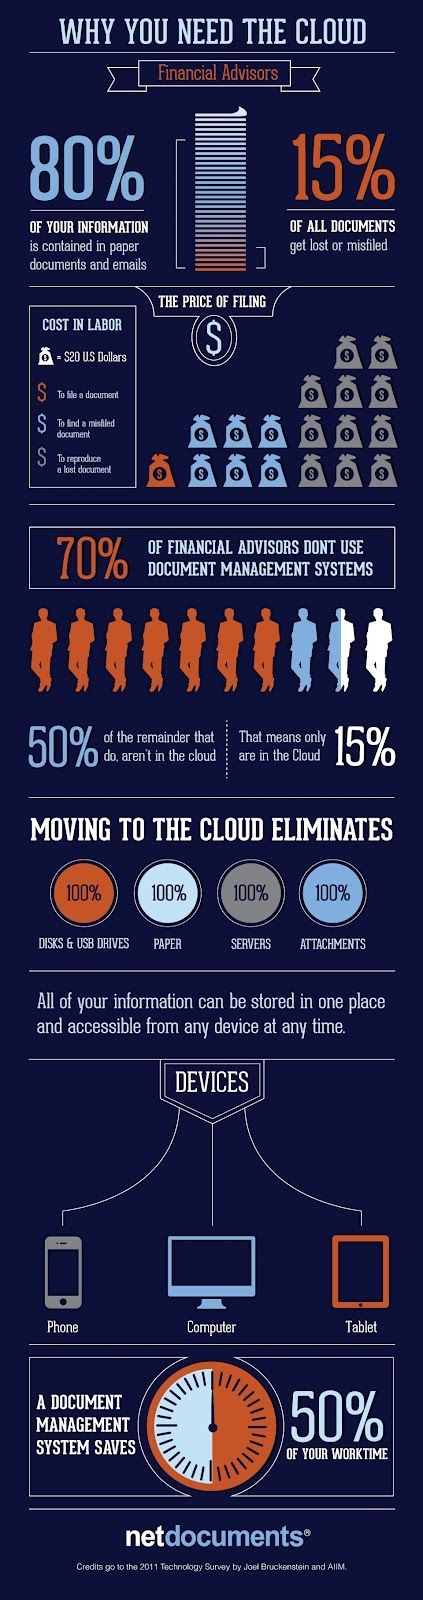 Why you need the cloud